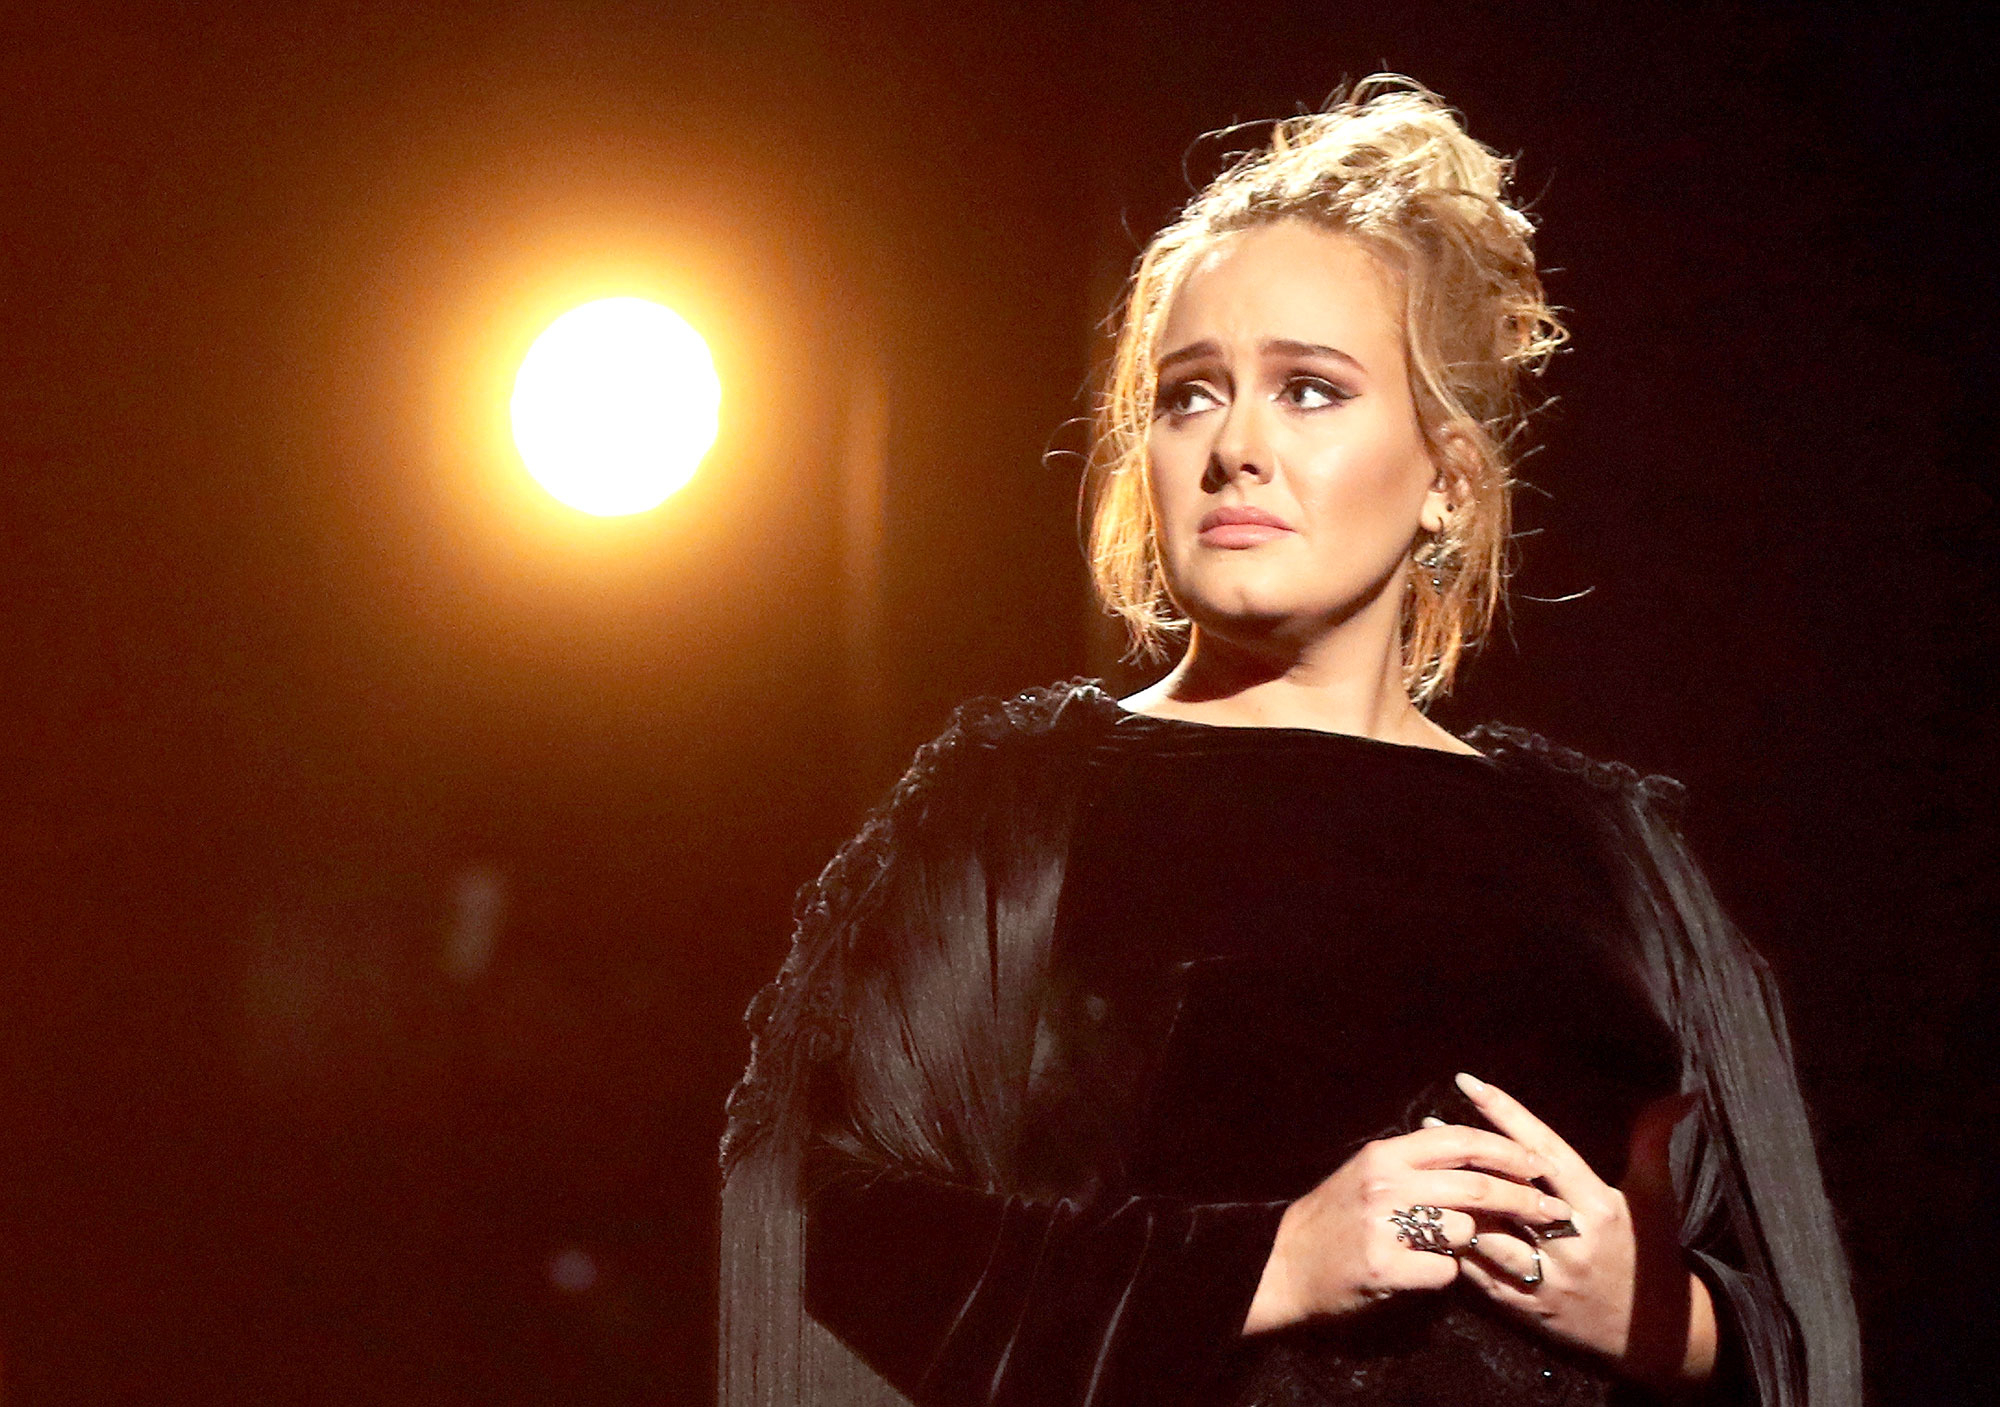 Adele during the 59th Annual Grammy Awards at Staples Center on Feb. 12, 2017, in Los Angeles.